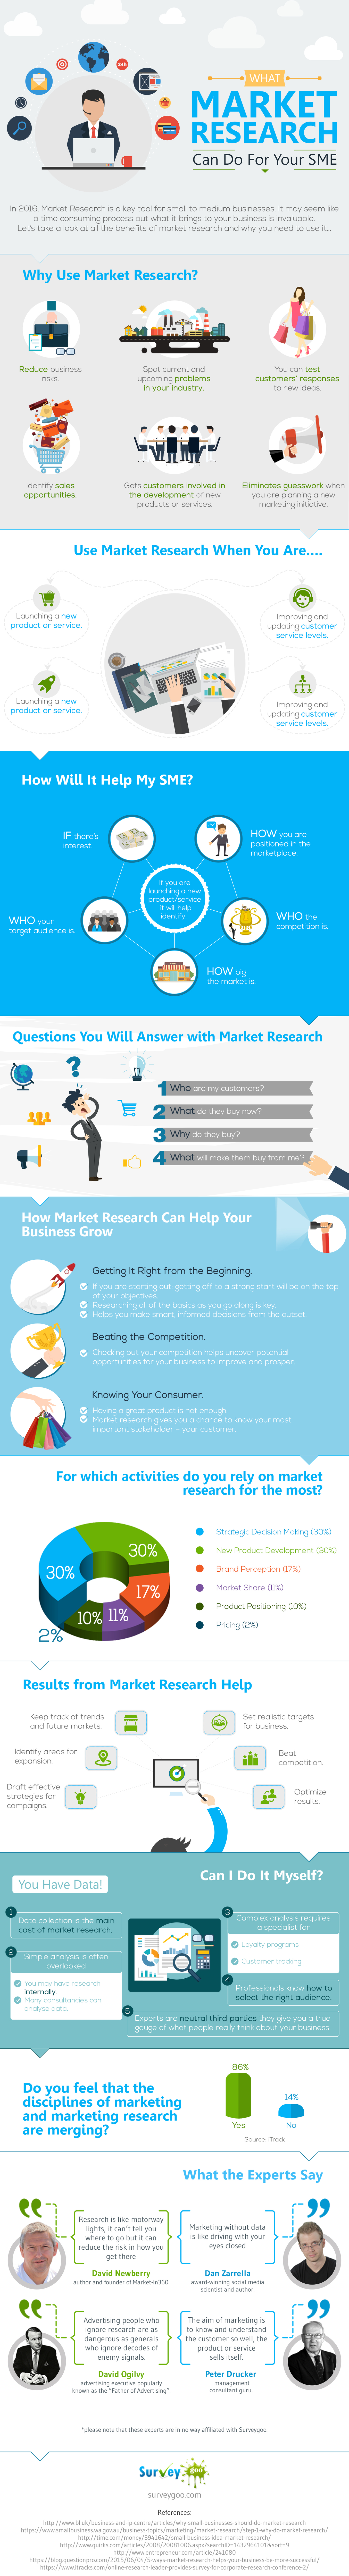 benefits_of-conducting_market_research_for_your_sme_infographic